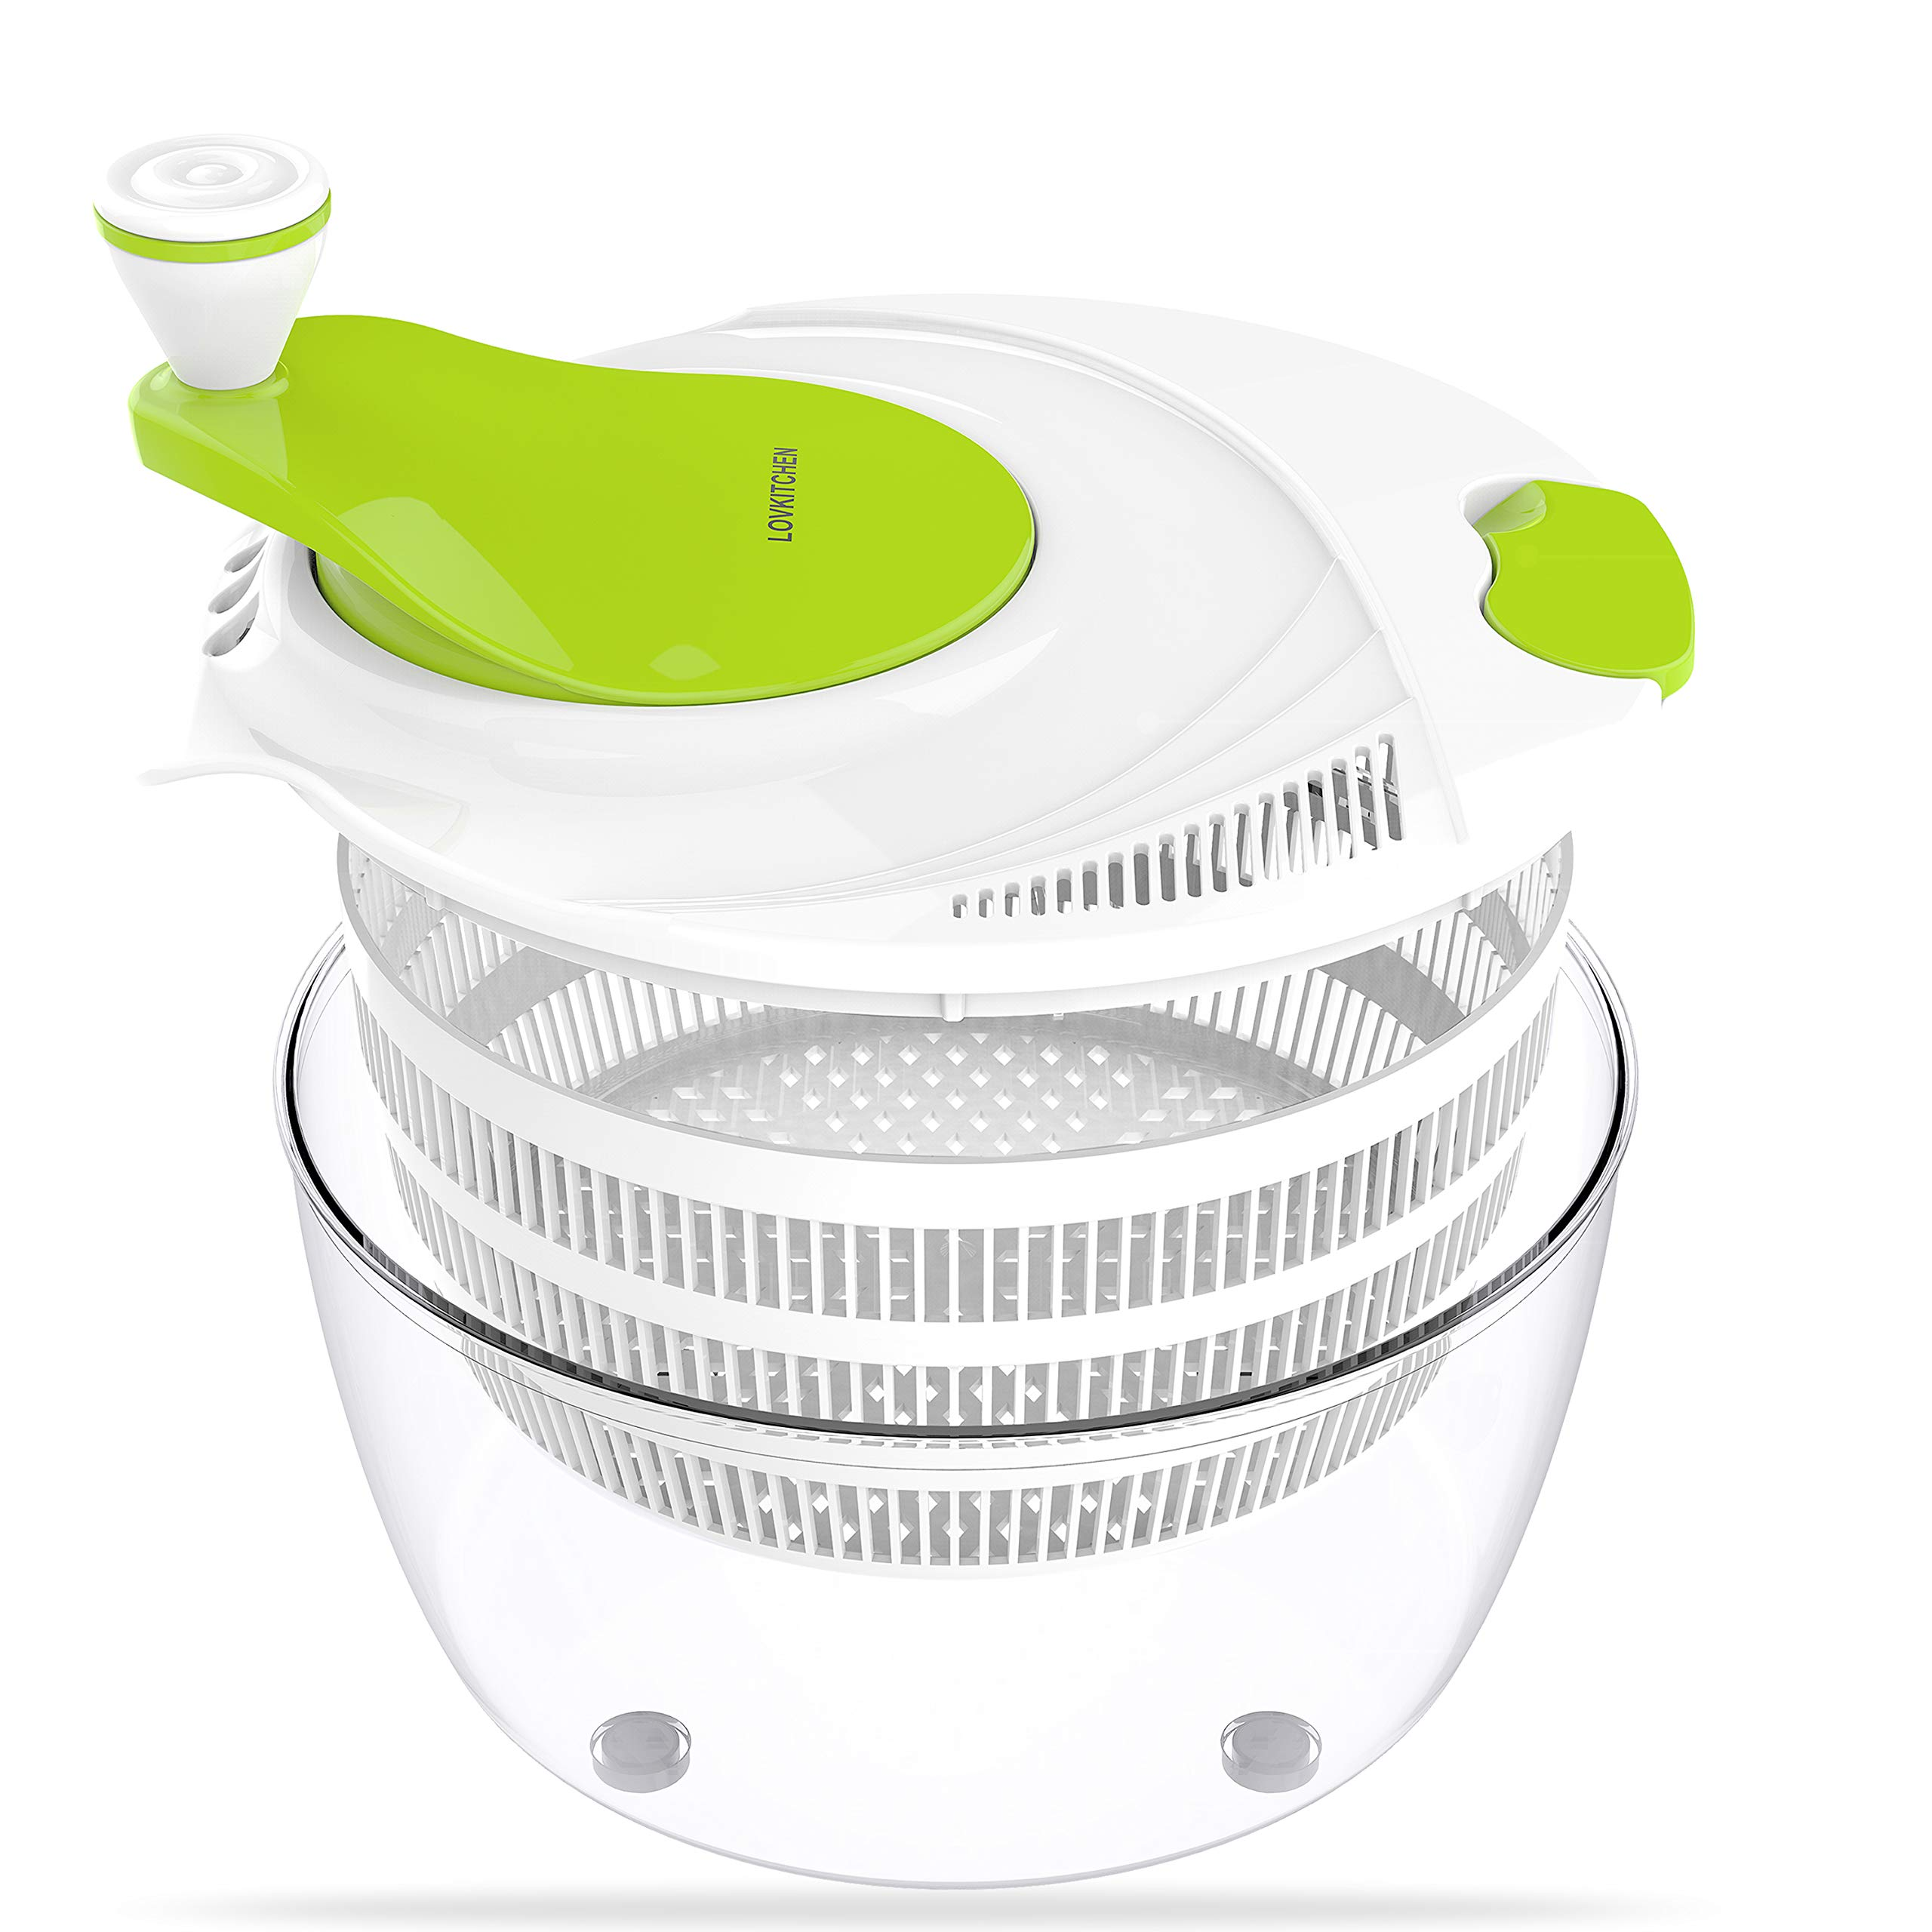 LOVKITCHEN Salad Spinner, Plastic Kitchen Large 4 Quarts Fruits and Vegetables Dryer Quick Dry Design & Drain Lettuce and Vegetable (Green-White) by LOVKITCHEN